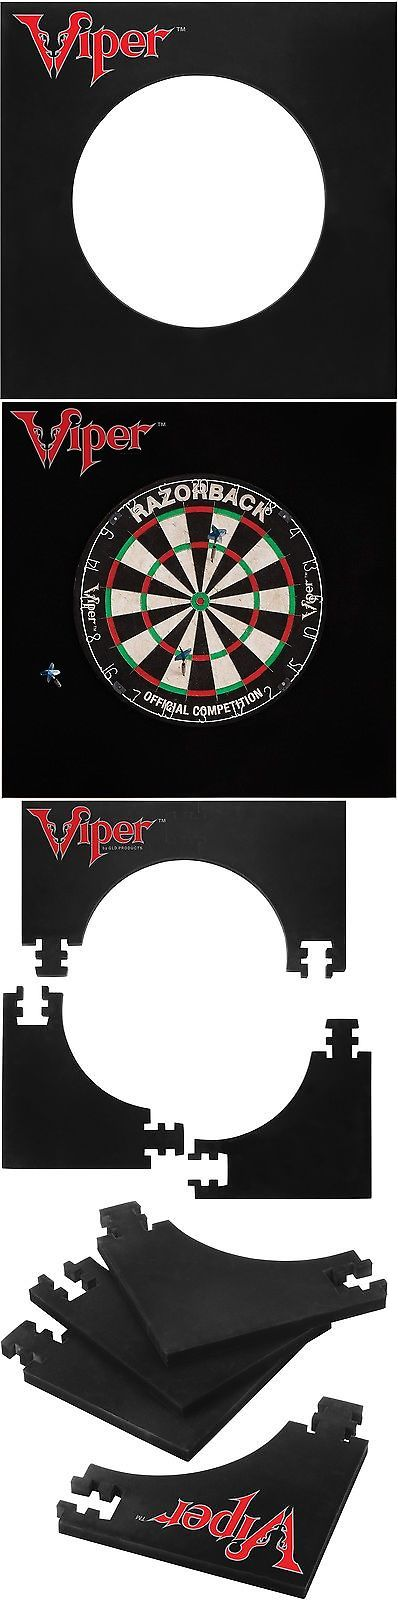 Dart Boards 72576: Viper Defender Ii Dartboard Surround Wall Protector New -> BUY IT NOW ONLY: $49.46 on eBay!